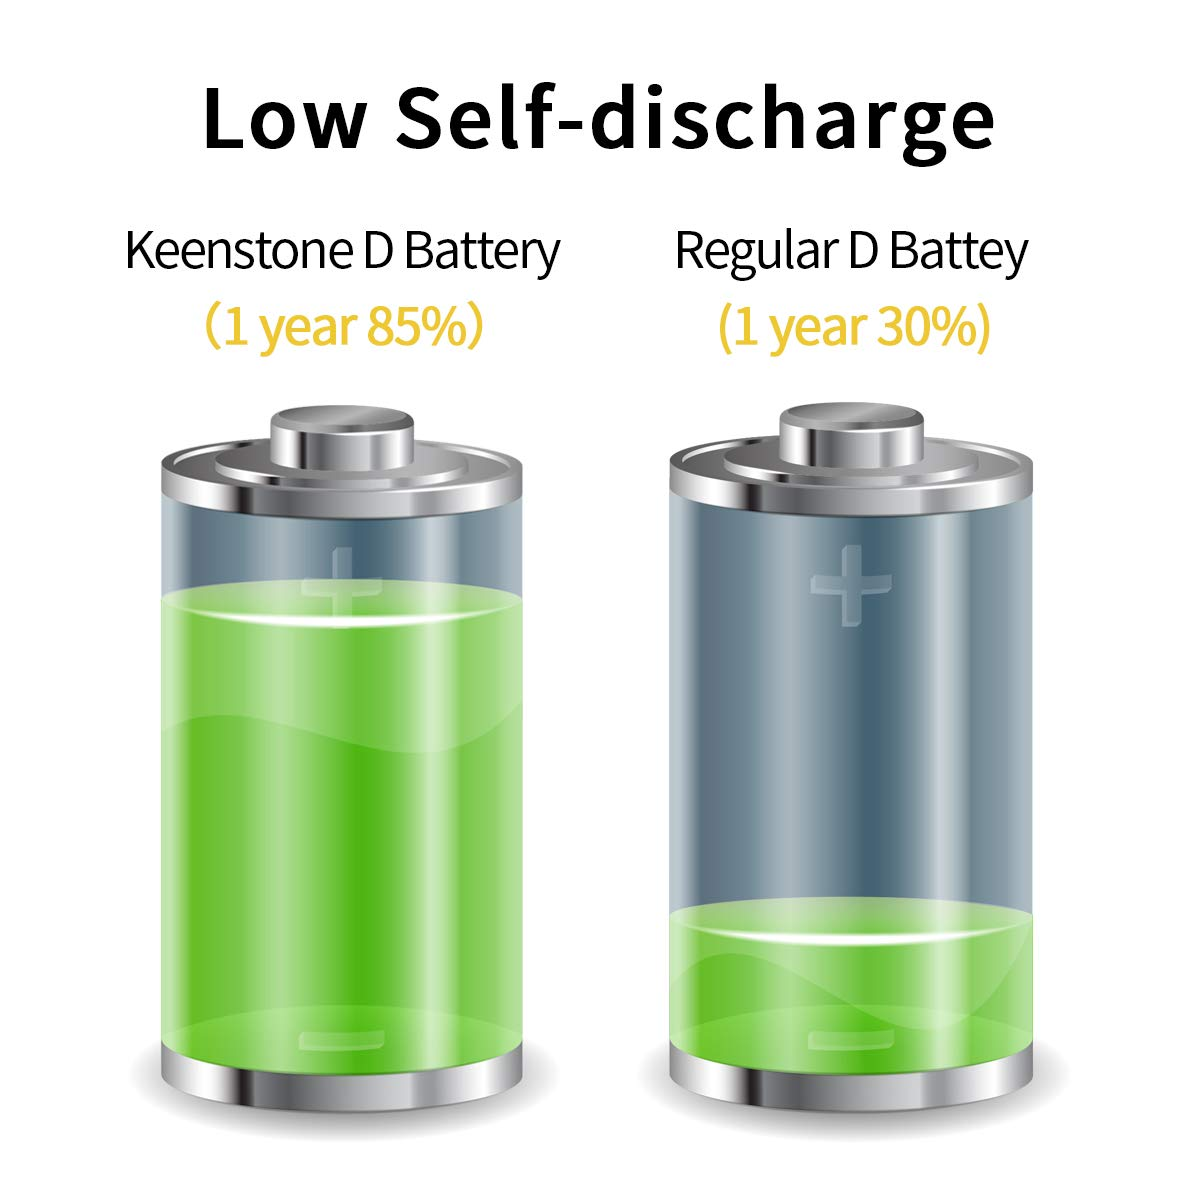 Keenstone Rechargeable D Batteries 10000mAh Ni-MH D Size Battery (4 Pack)